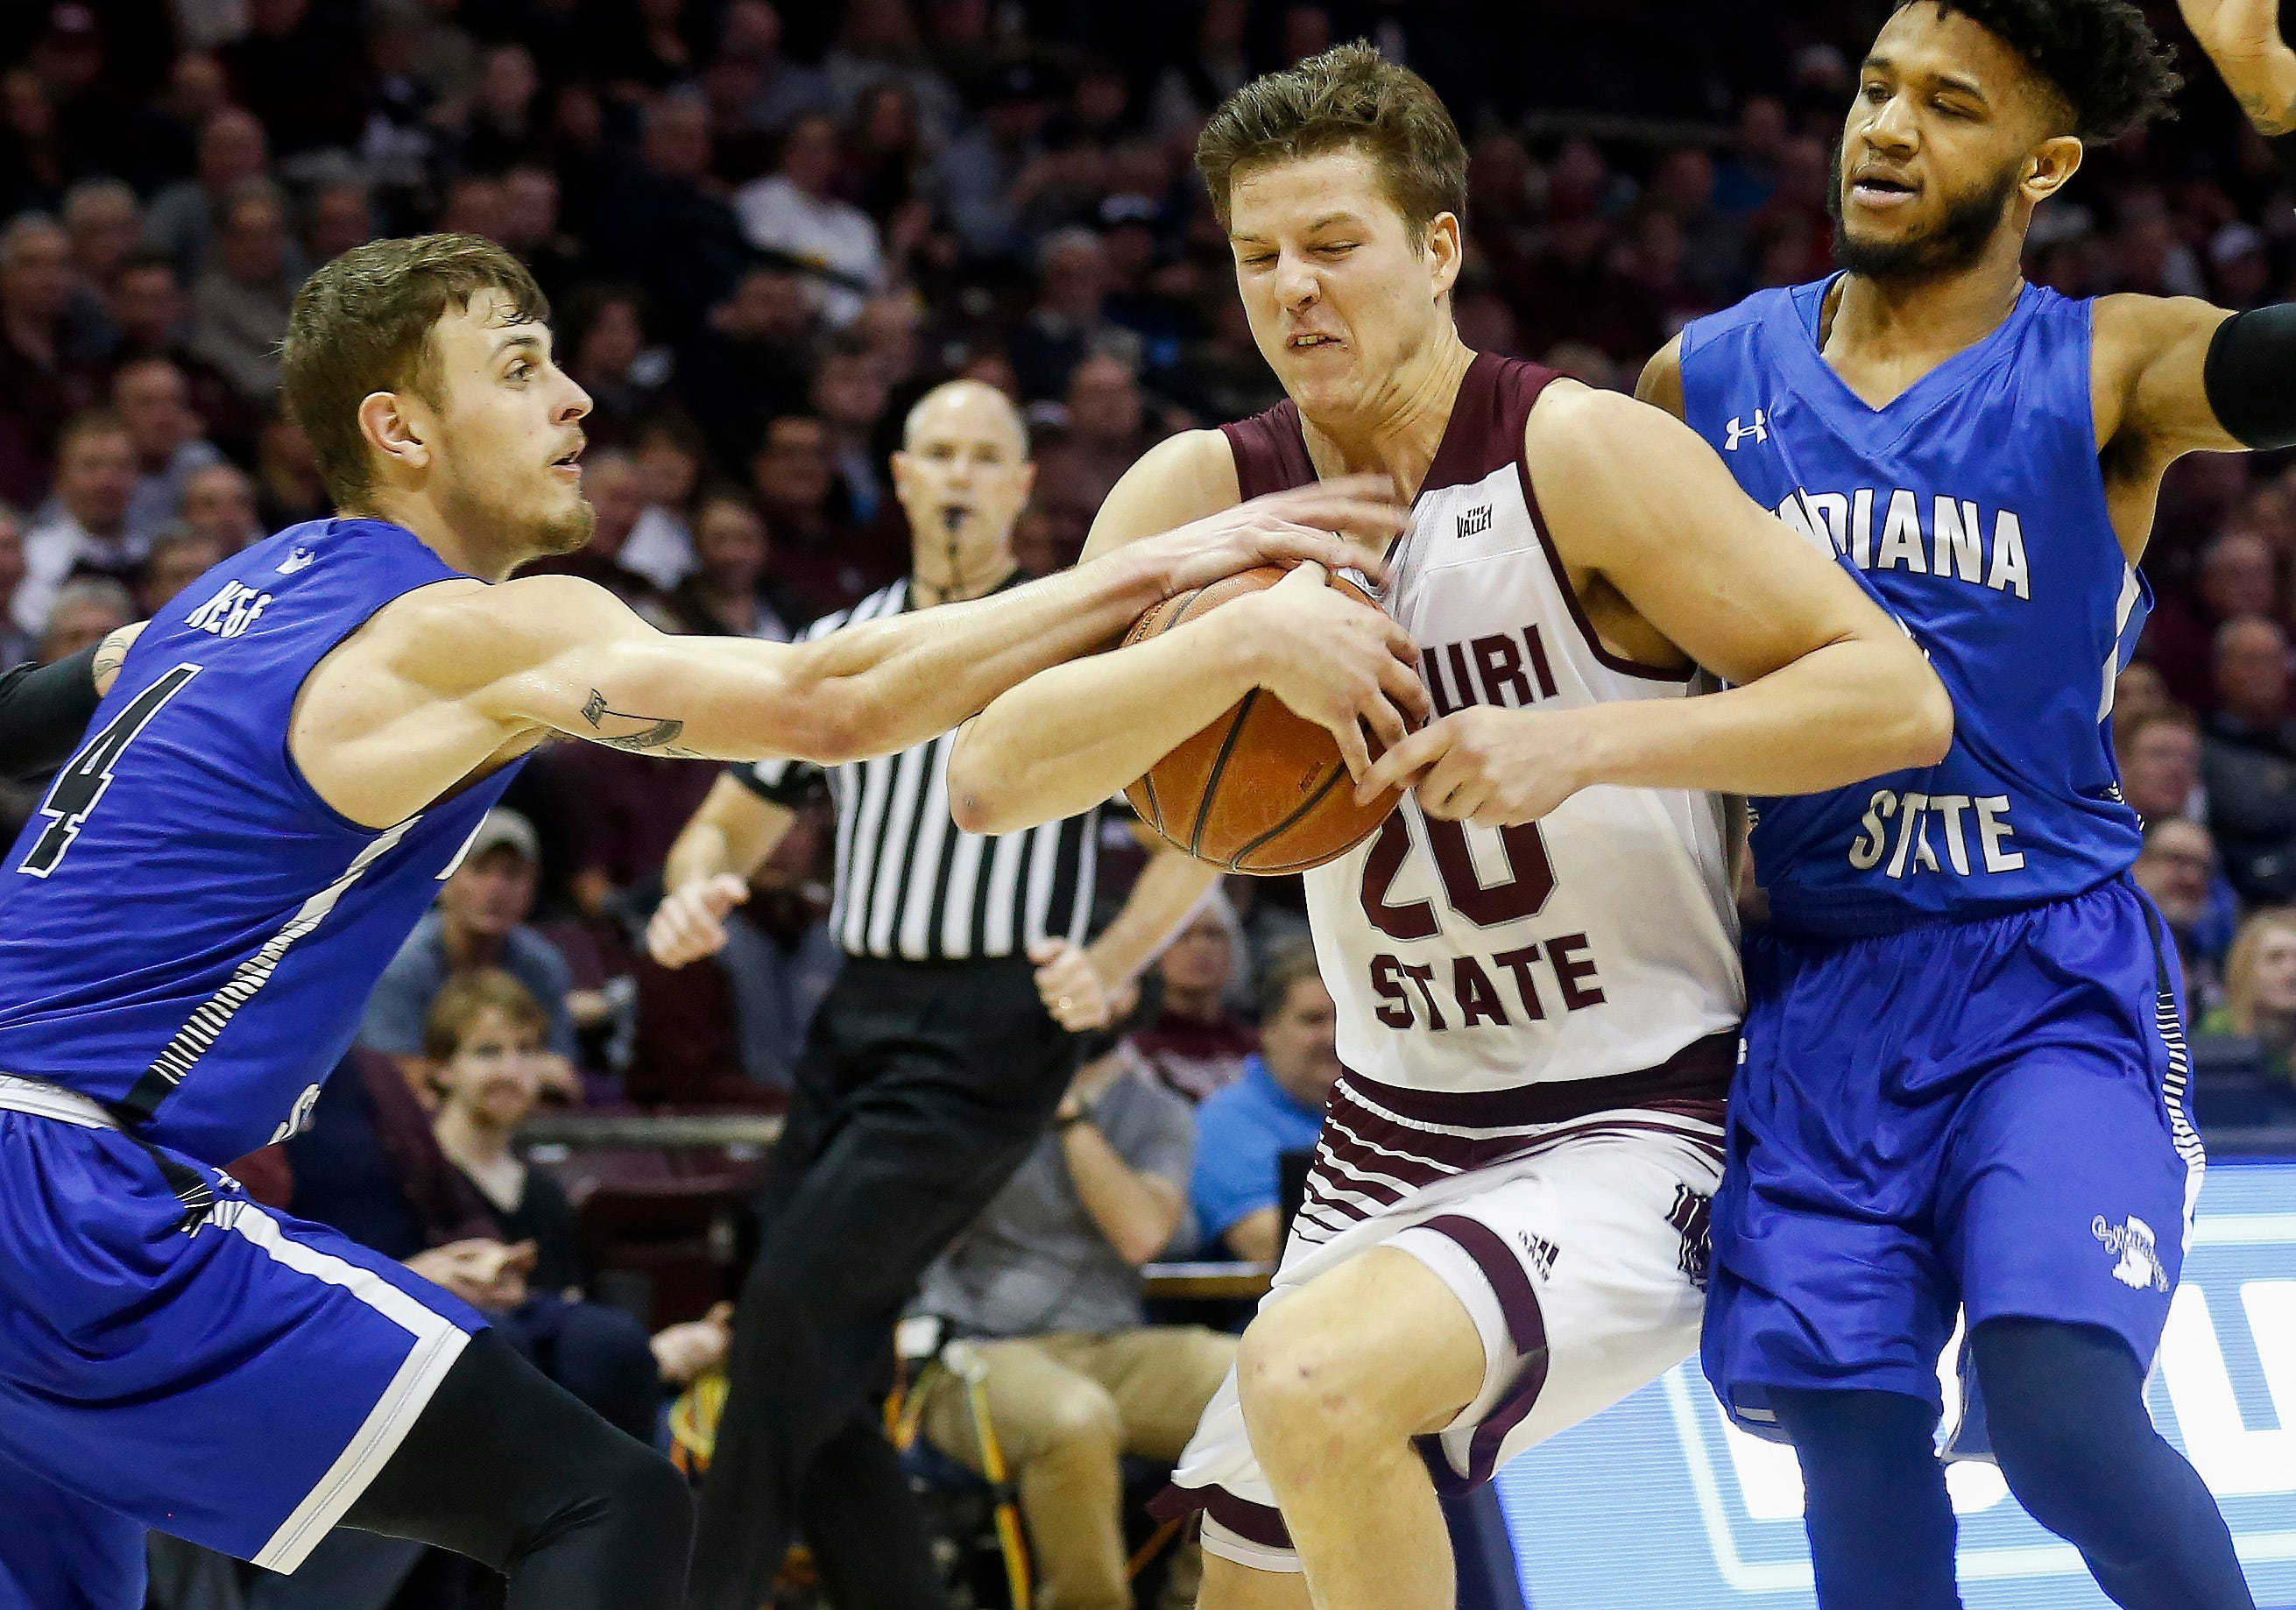 Ryan Kreklow, of Missouri State, drives to the net during the Bears' game against Indiana State at JQH Arena on Saturday, Feb. 23, 2019.